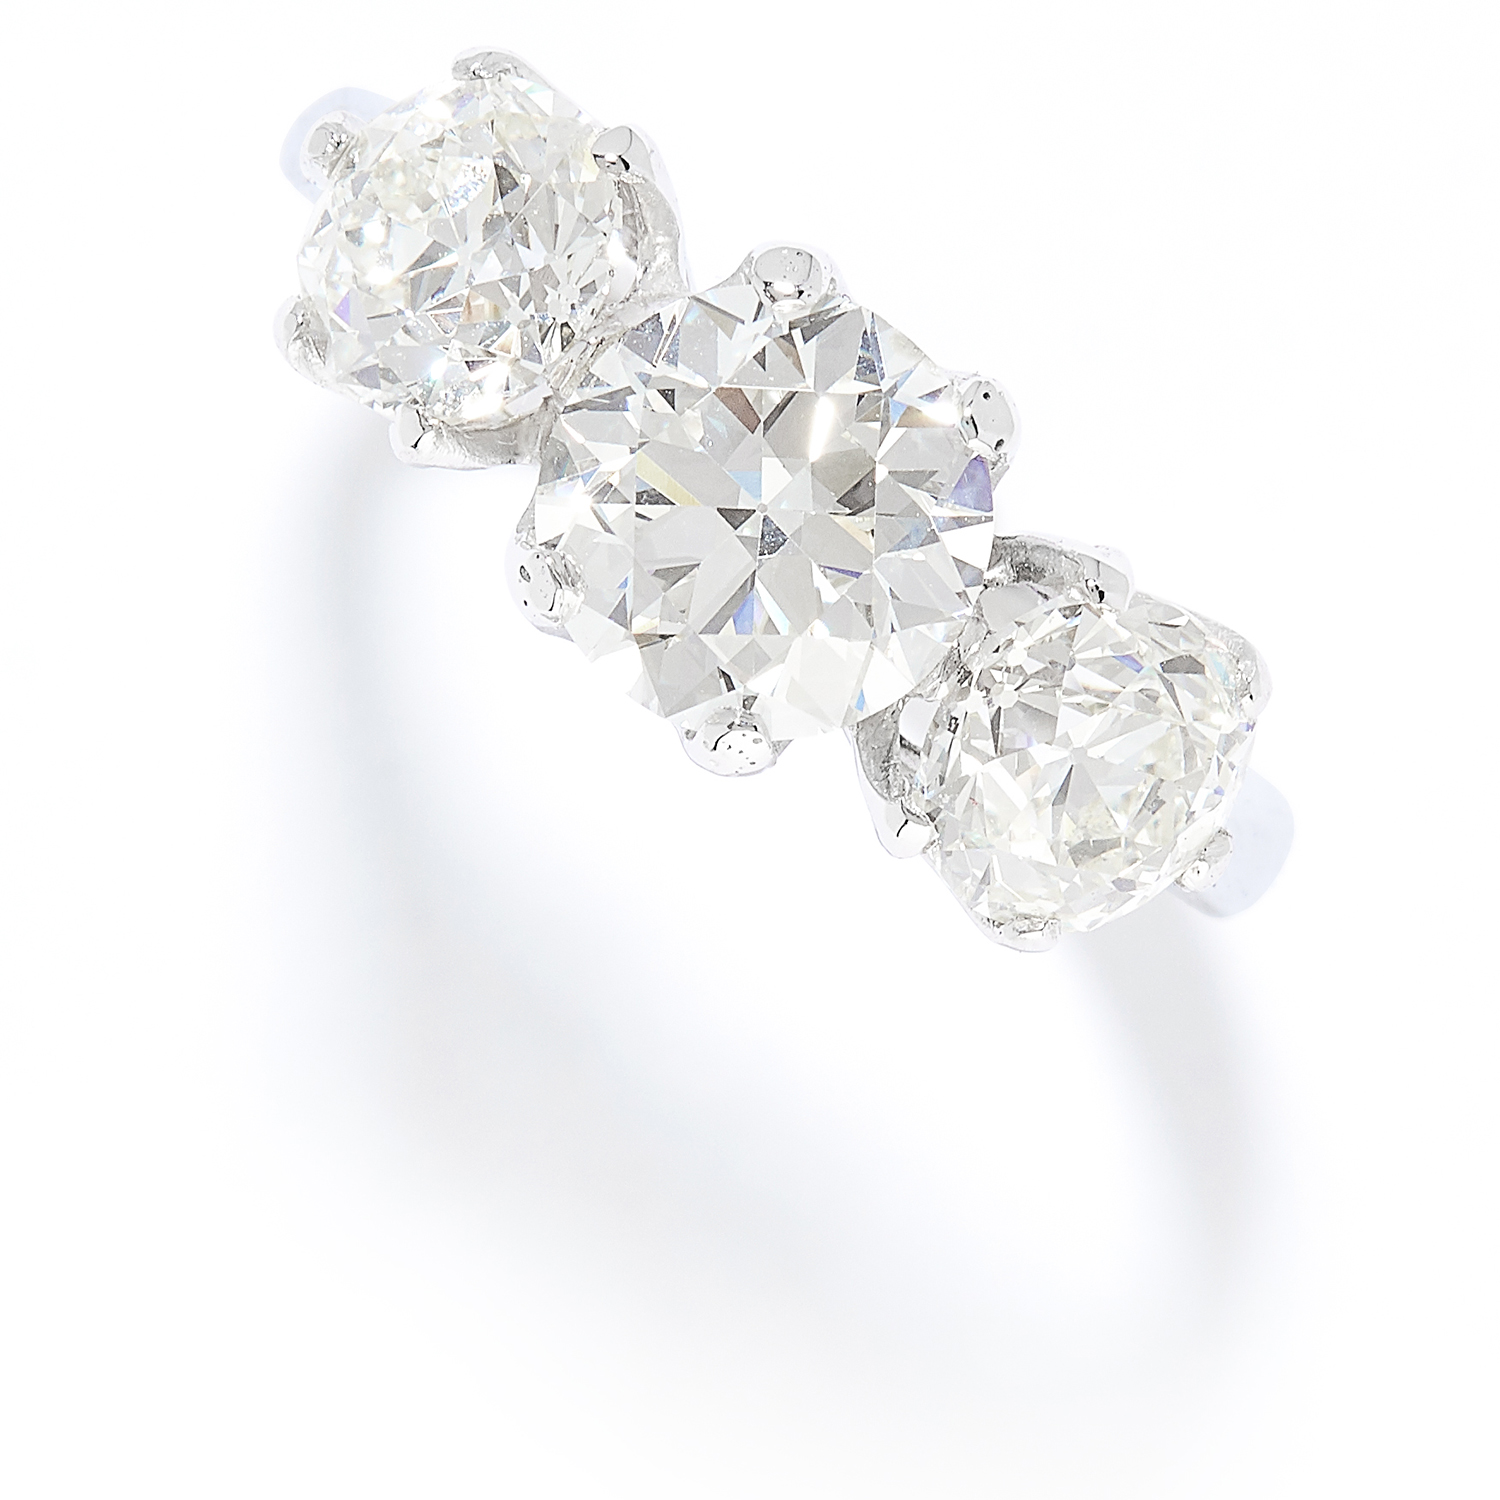 Los 54 - 3.25 CARAT DIAMOND THREE STONE RING in platinum or white gold, set with a trio of old round cut